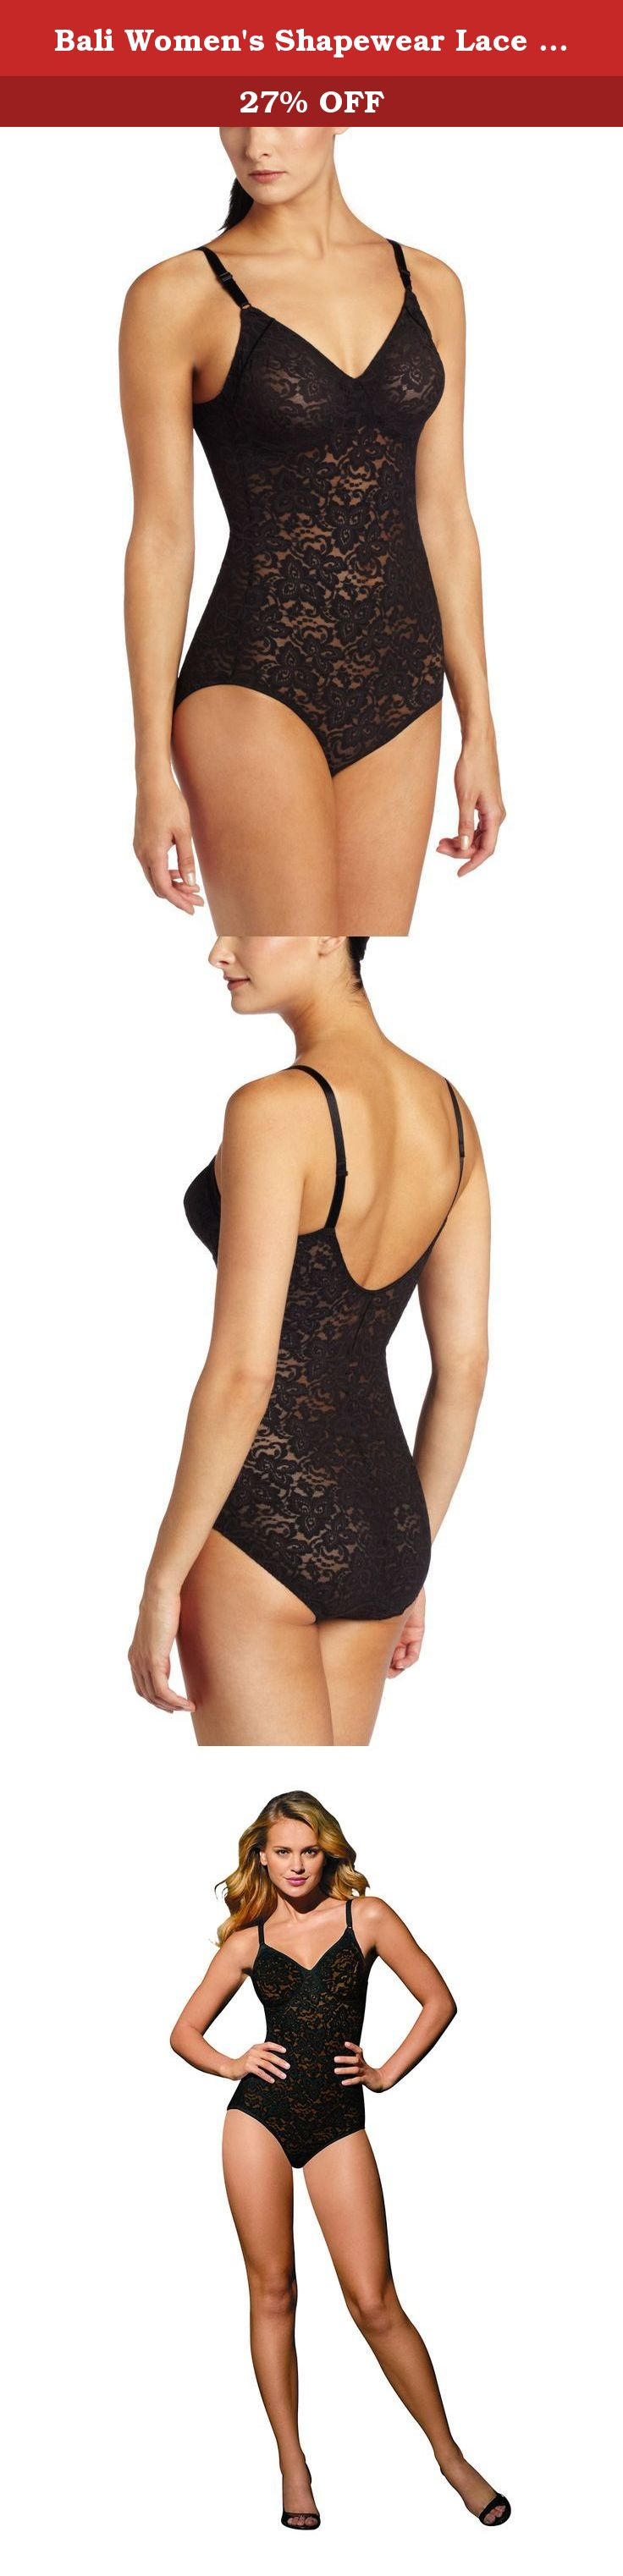 2d98184d6c56c Bali Women s Shapewear Lace  N Smooth Body Briefer